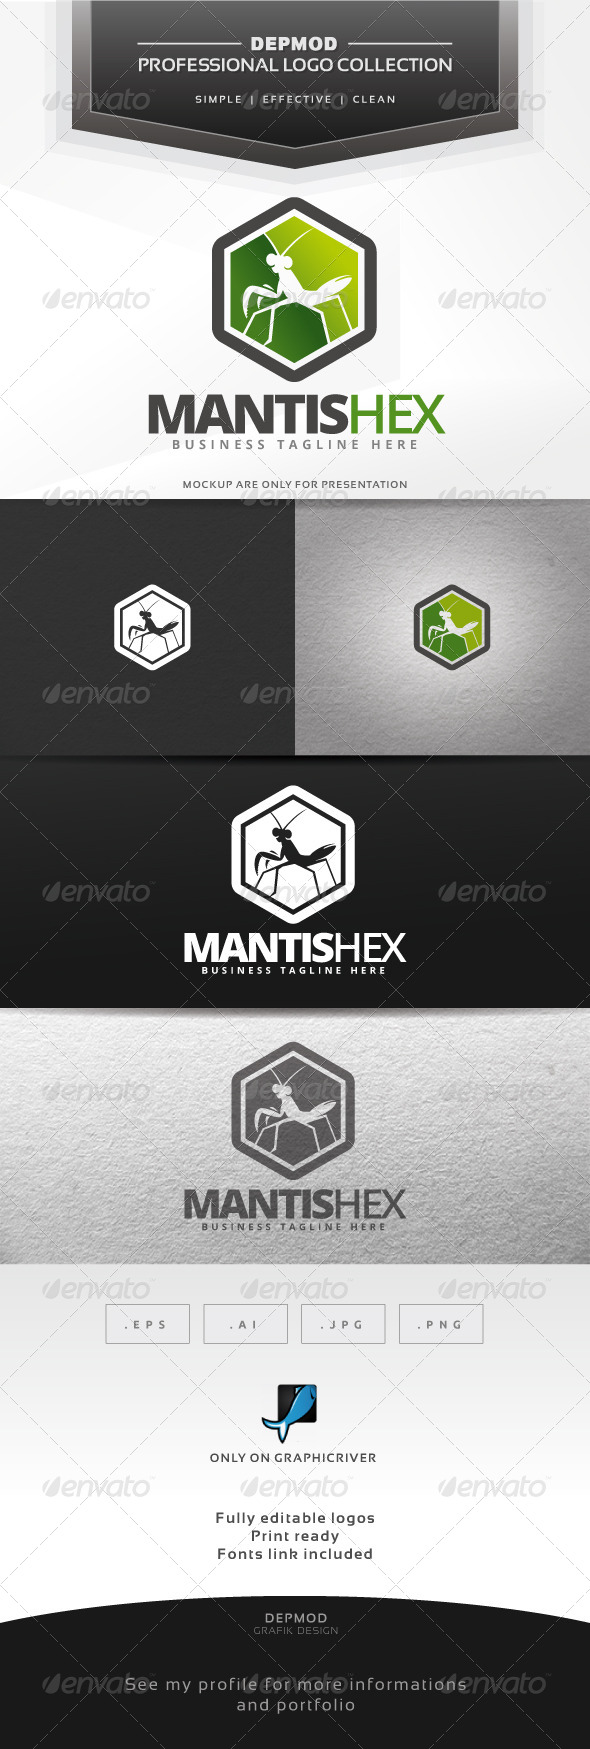 GraphicRiver Mantis Hex Logo 6839629